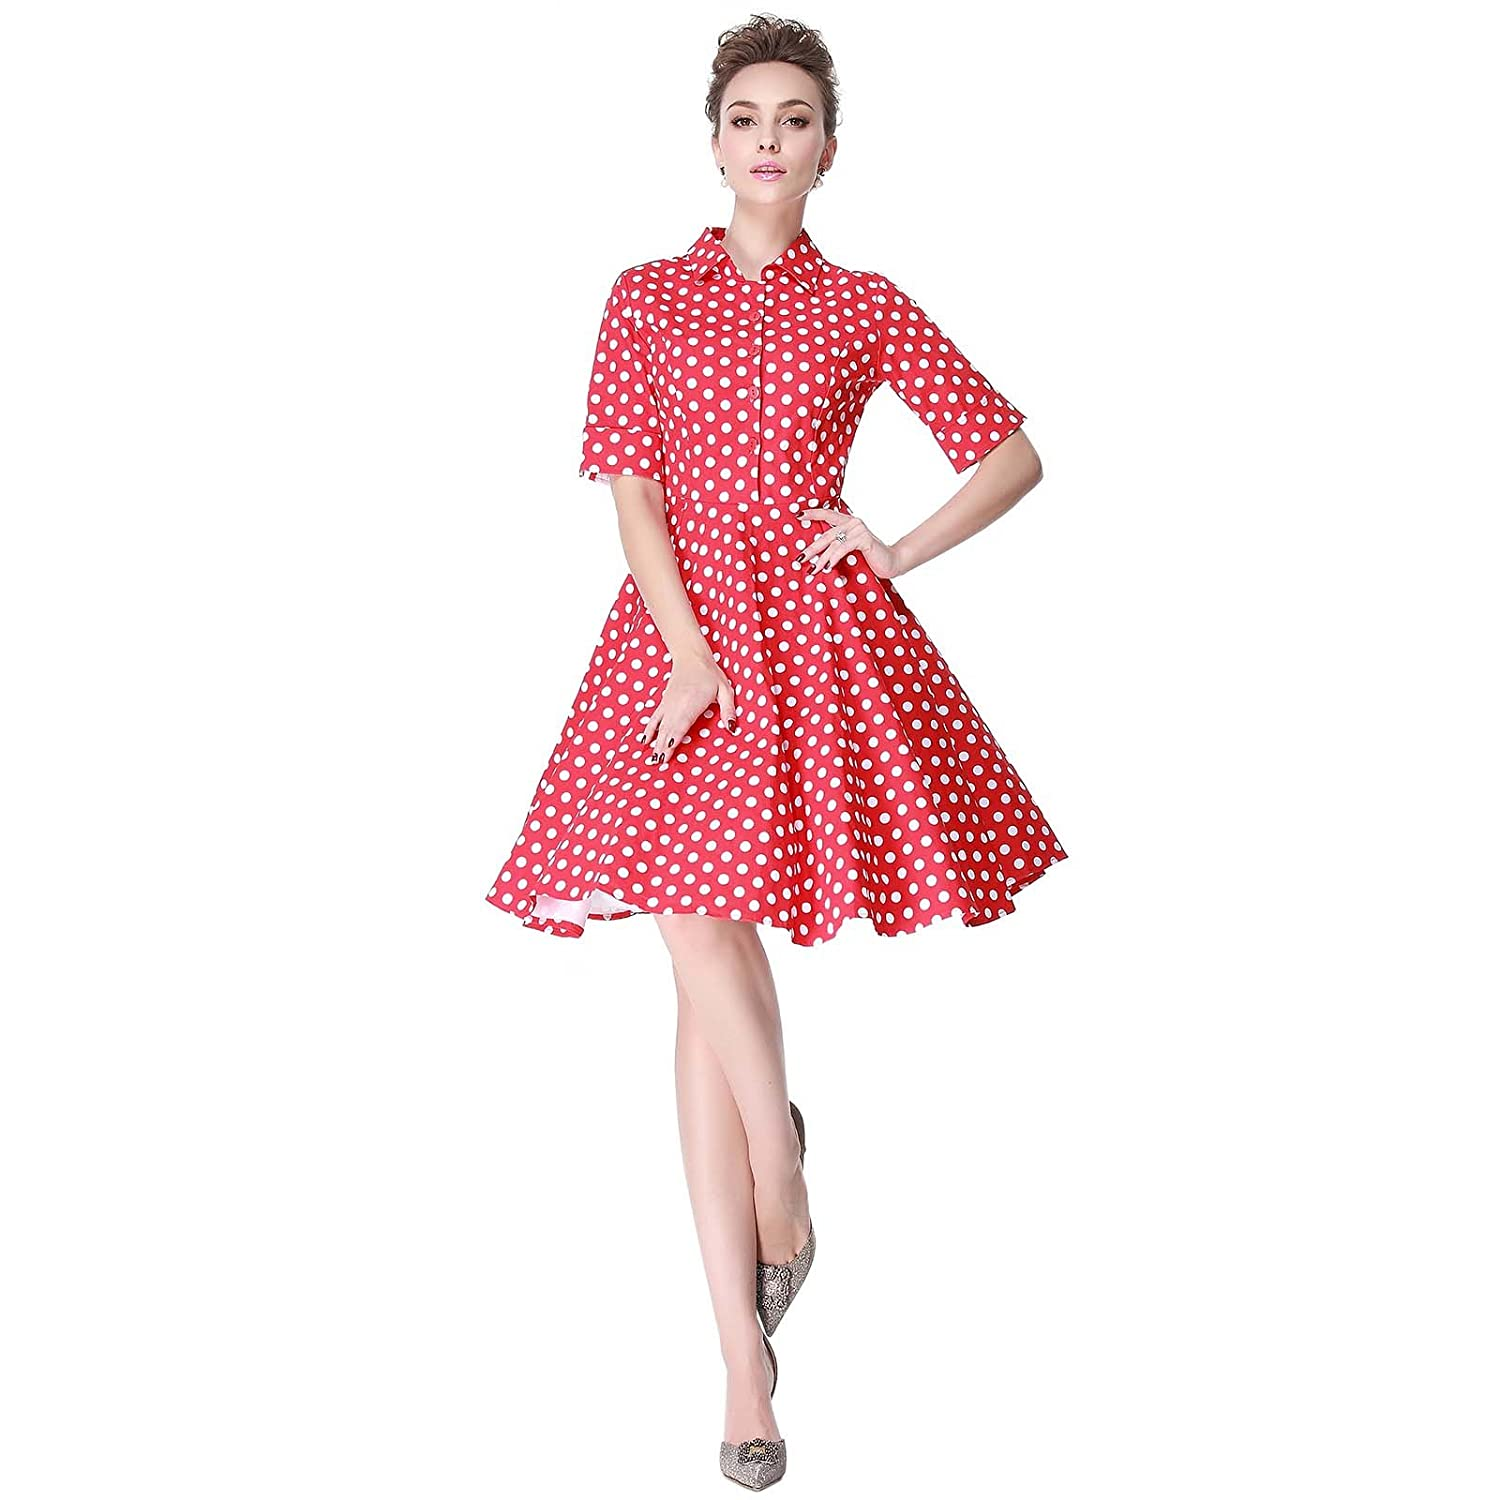 Vintage Inspired Halloween Costumes Heroecol Womens Vintage 1950s Dresses Polo Neck Short Sleeve 50s 60s Polka Dot Style Retro Swing Cotton Dress $21.99 AT vintagedancer.com